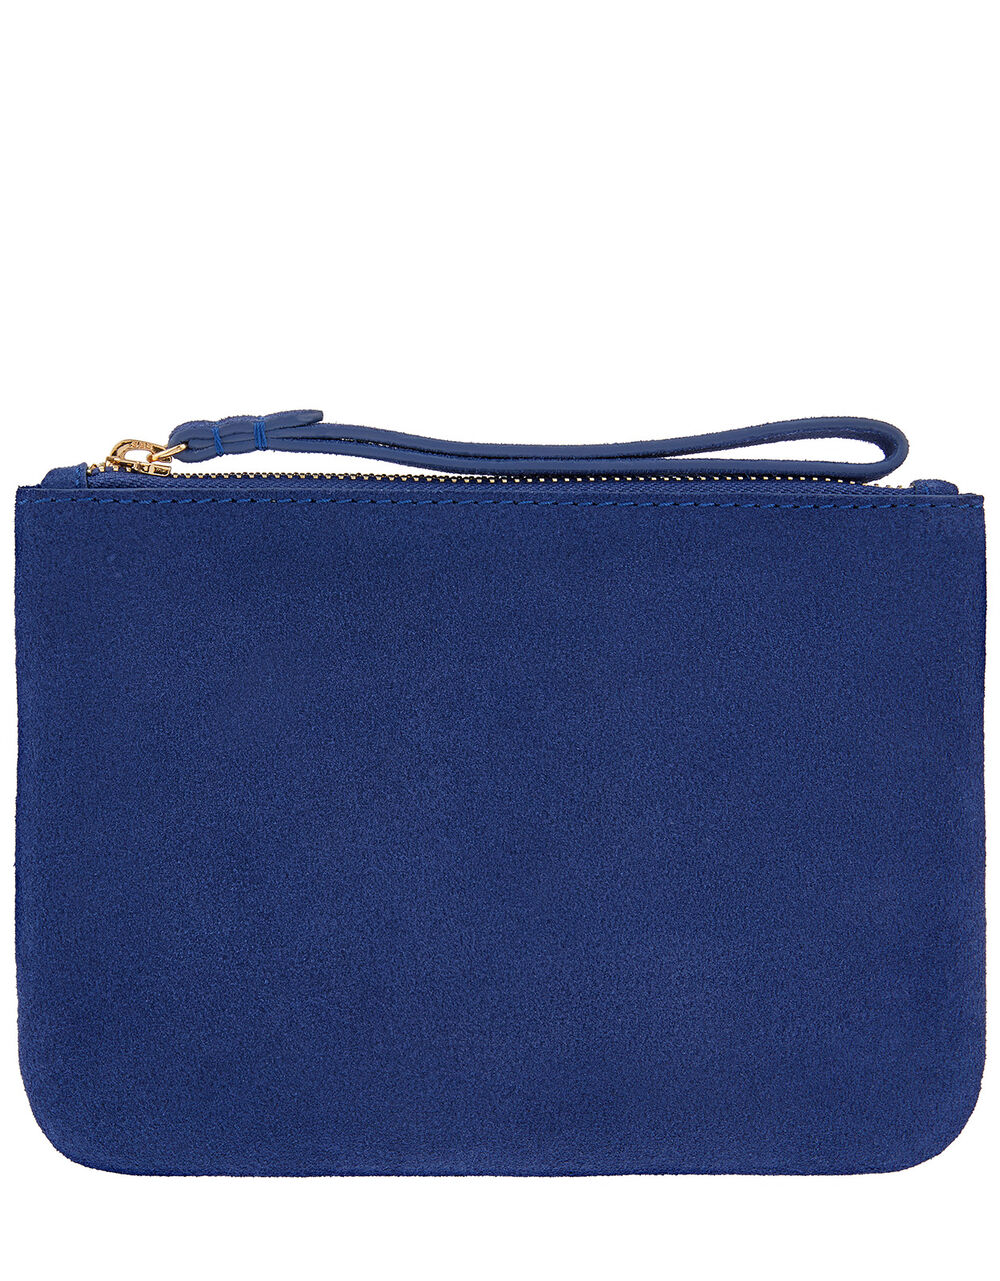 Leather Pouch Bag, , large